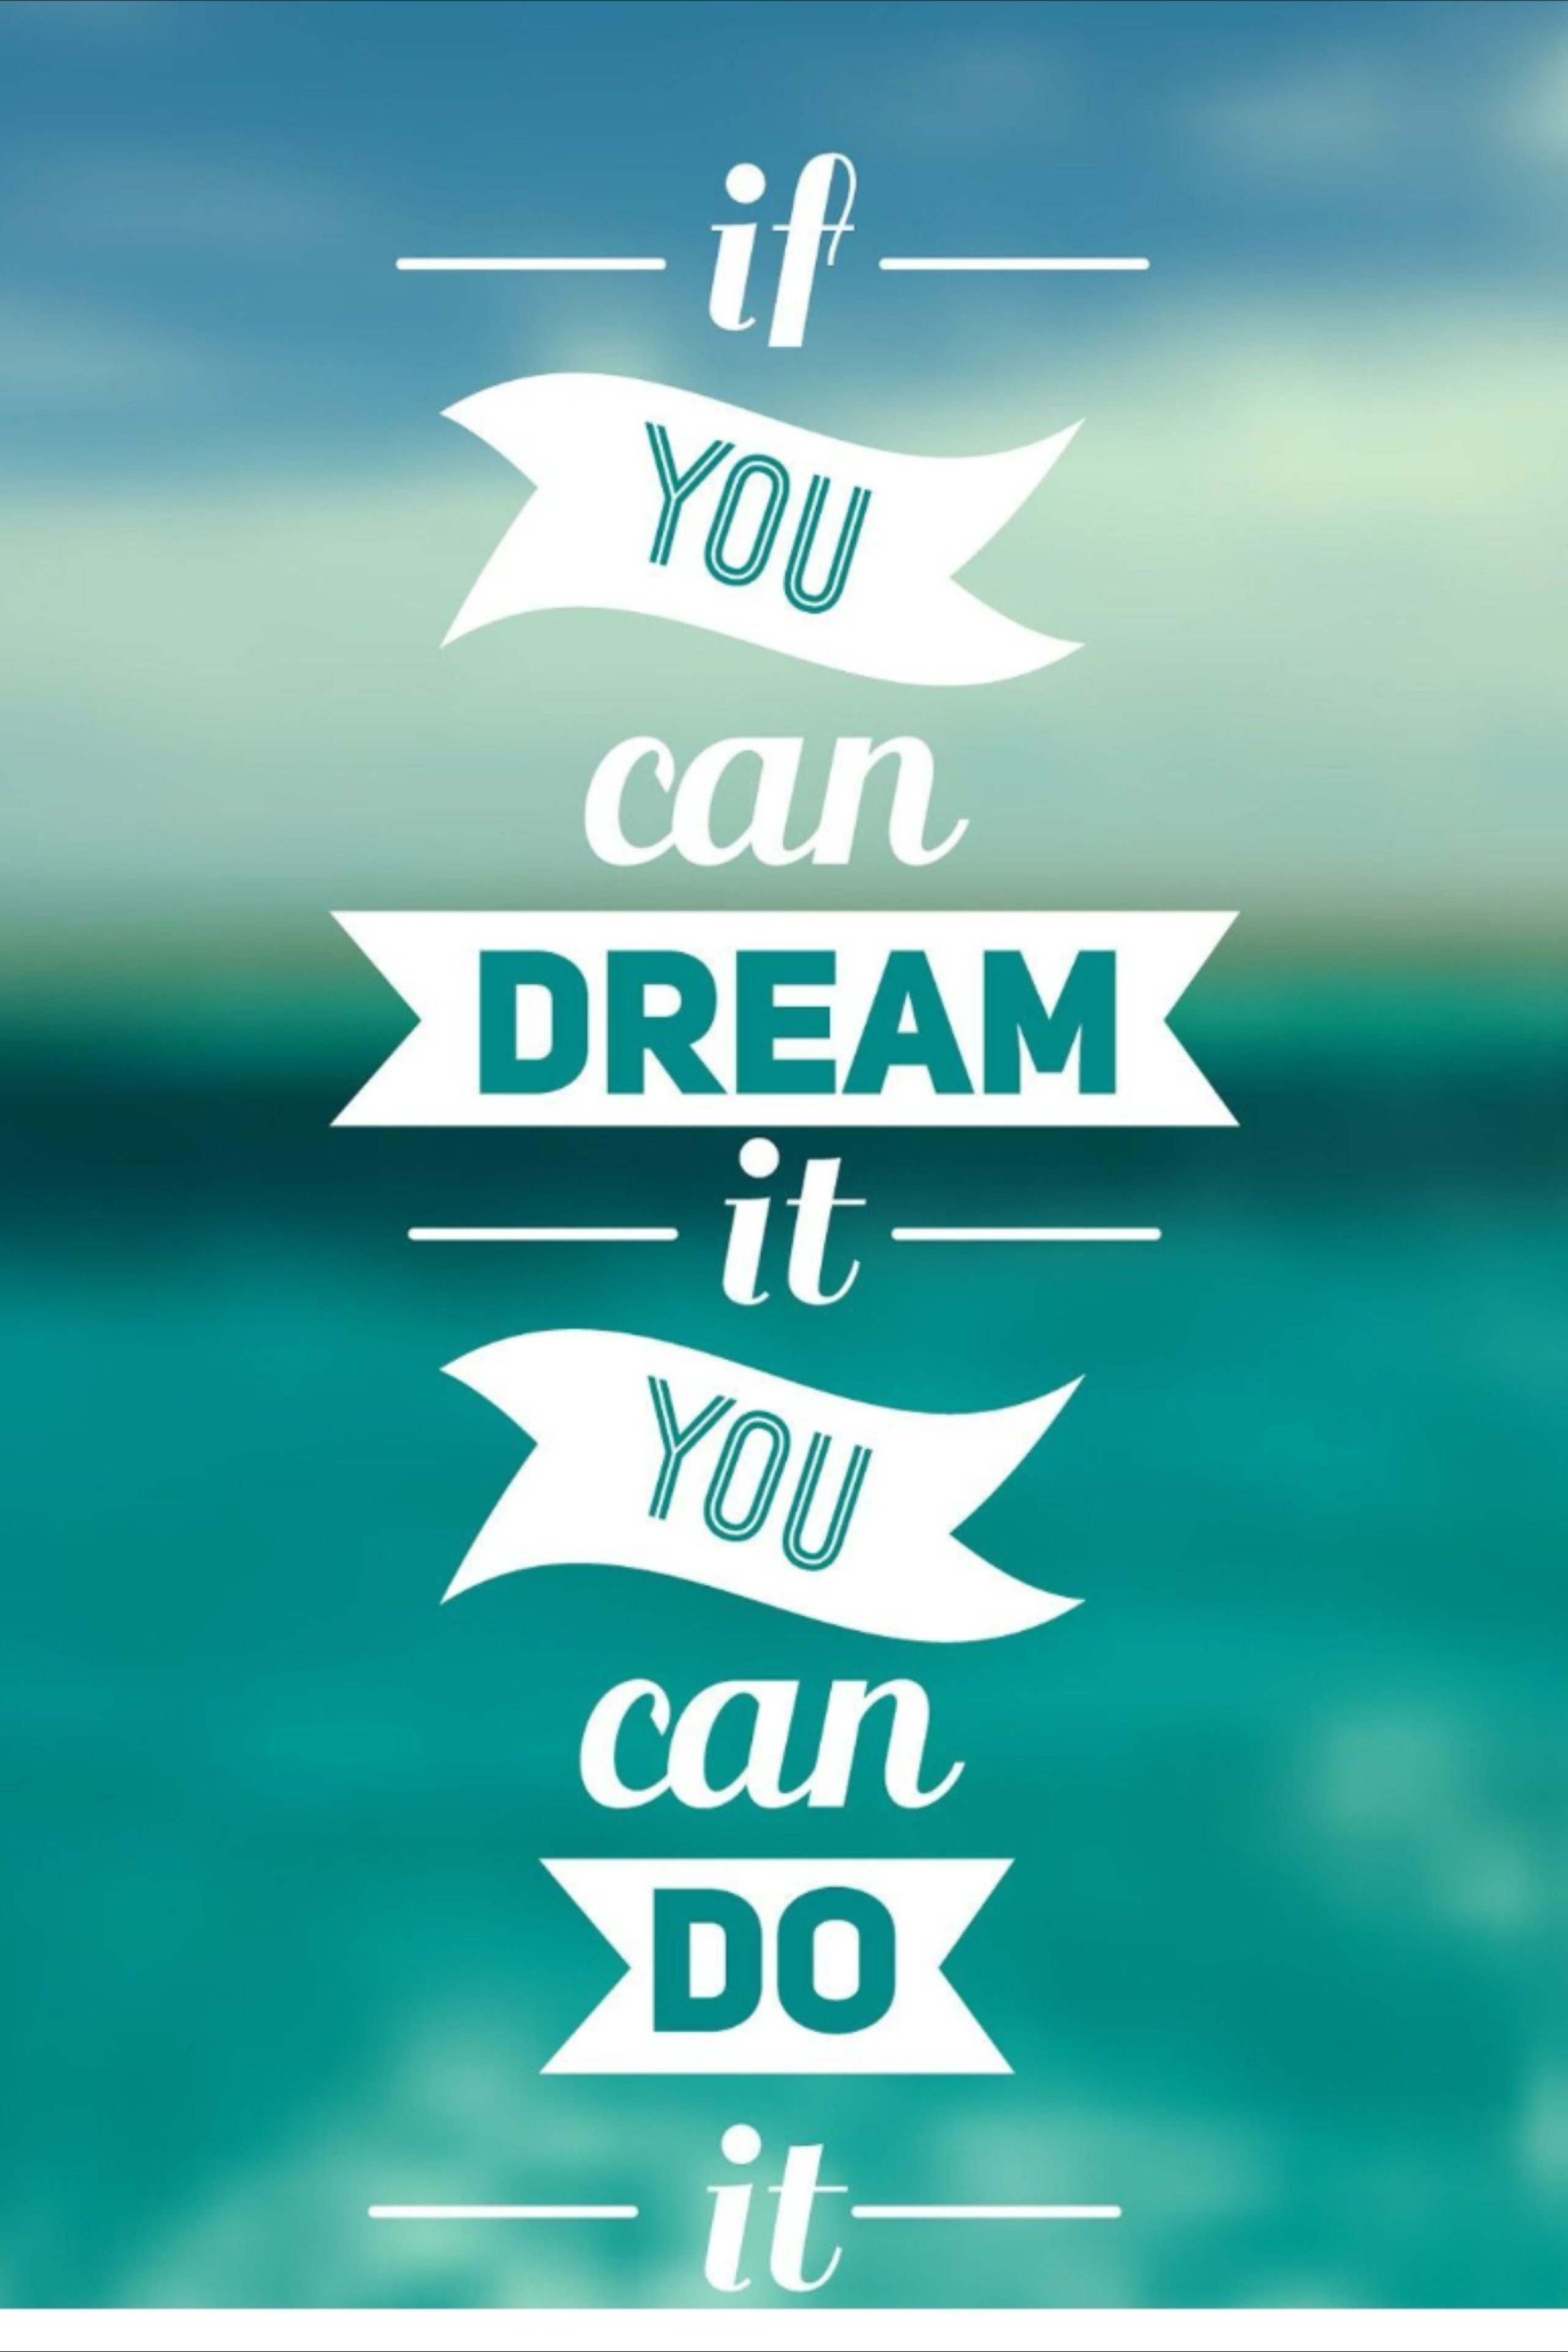 How To Work On Your Dreams Inspirational Quotes Wallpapers Wallpaper Iphone Quotes Teal Wallpaper Iphone